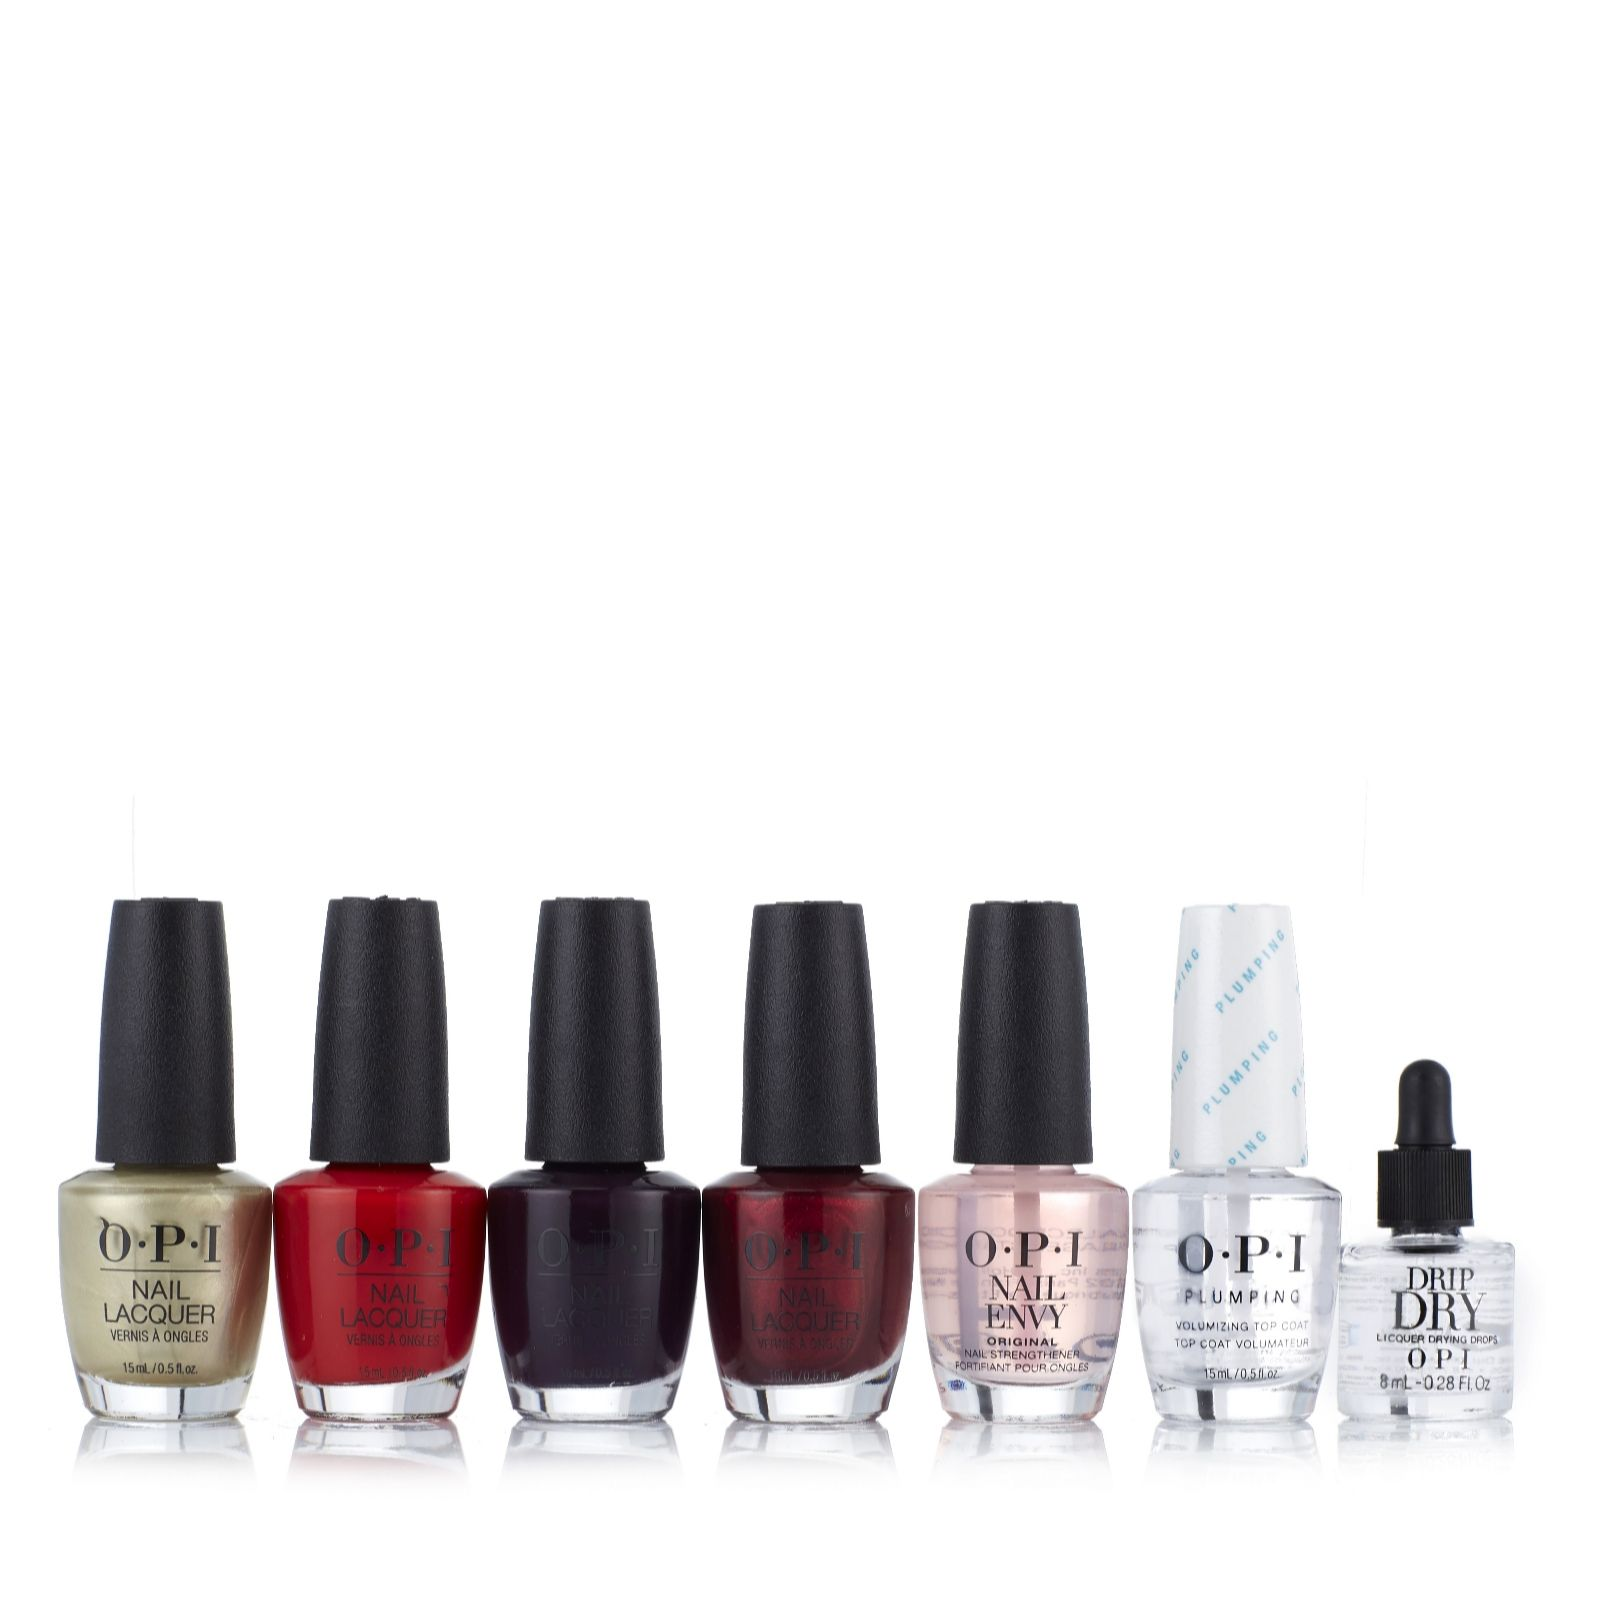 Nailcare - QVC UK